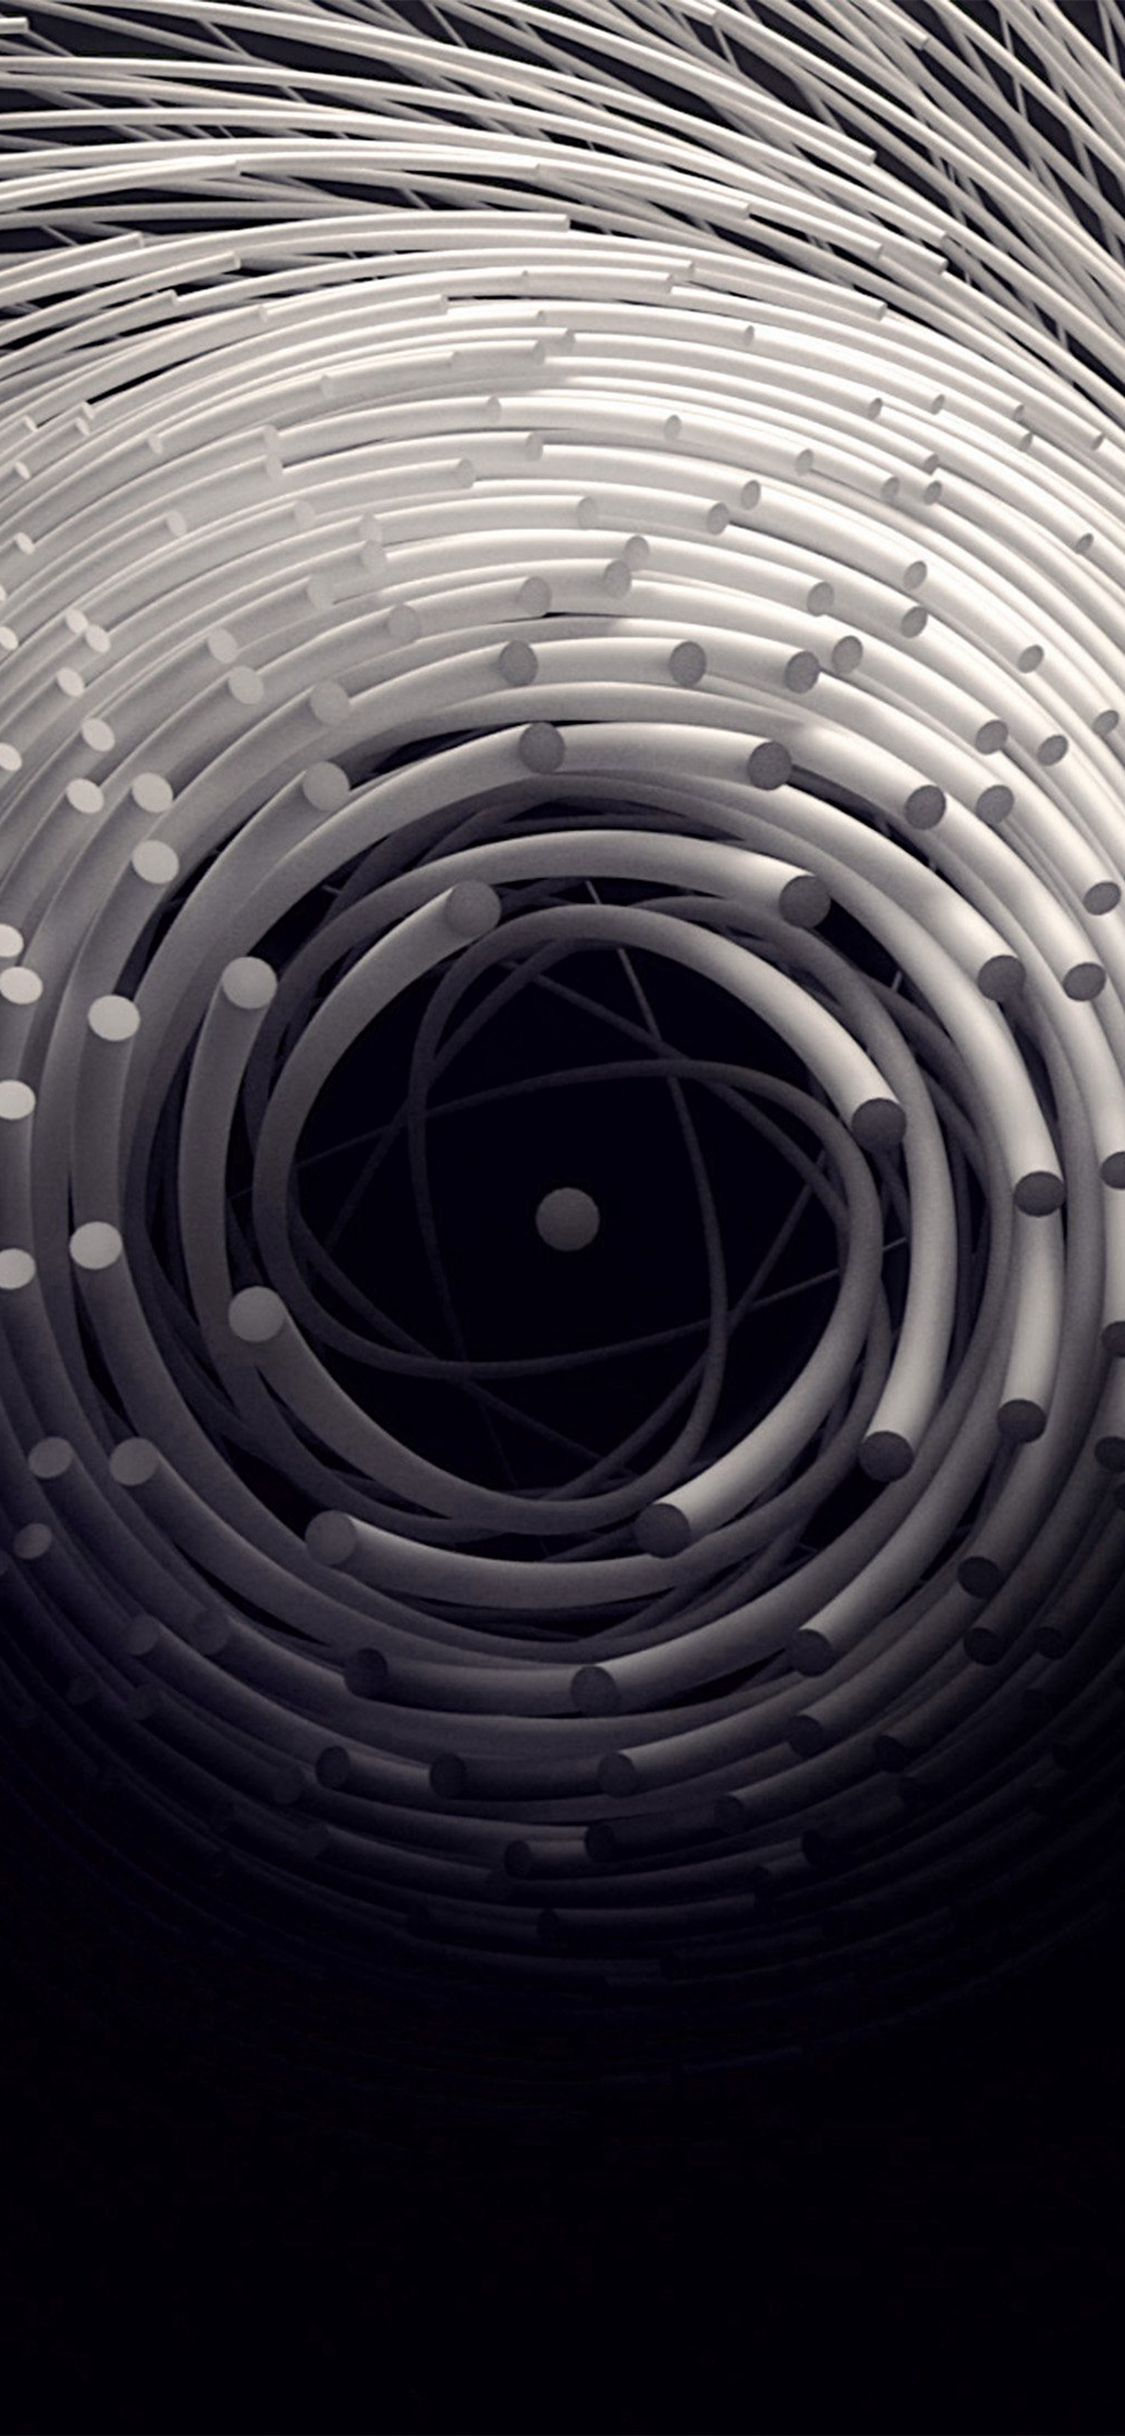 Circle 3d Dark Abstact Illustration Art Iphone X Wallpaper Iphone Wallpaper Landscape 3d Wallpaper Iphone Dark Wallpaper